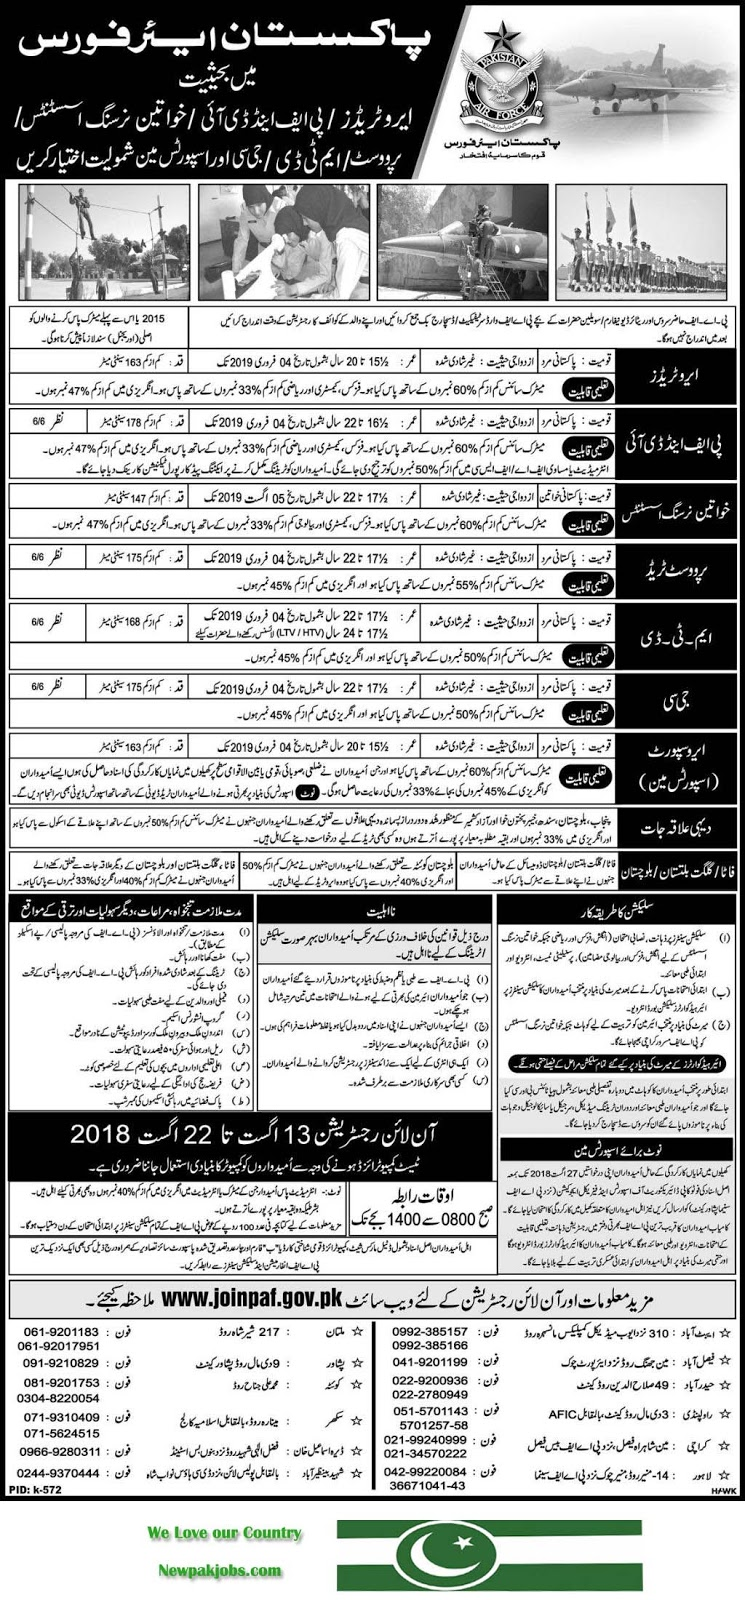 Join Pakistan Air Force, PAF Jobs 2018, Joinpaf.gov.pk, August 2018